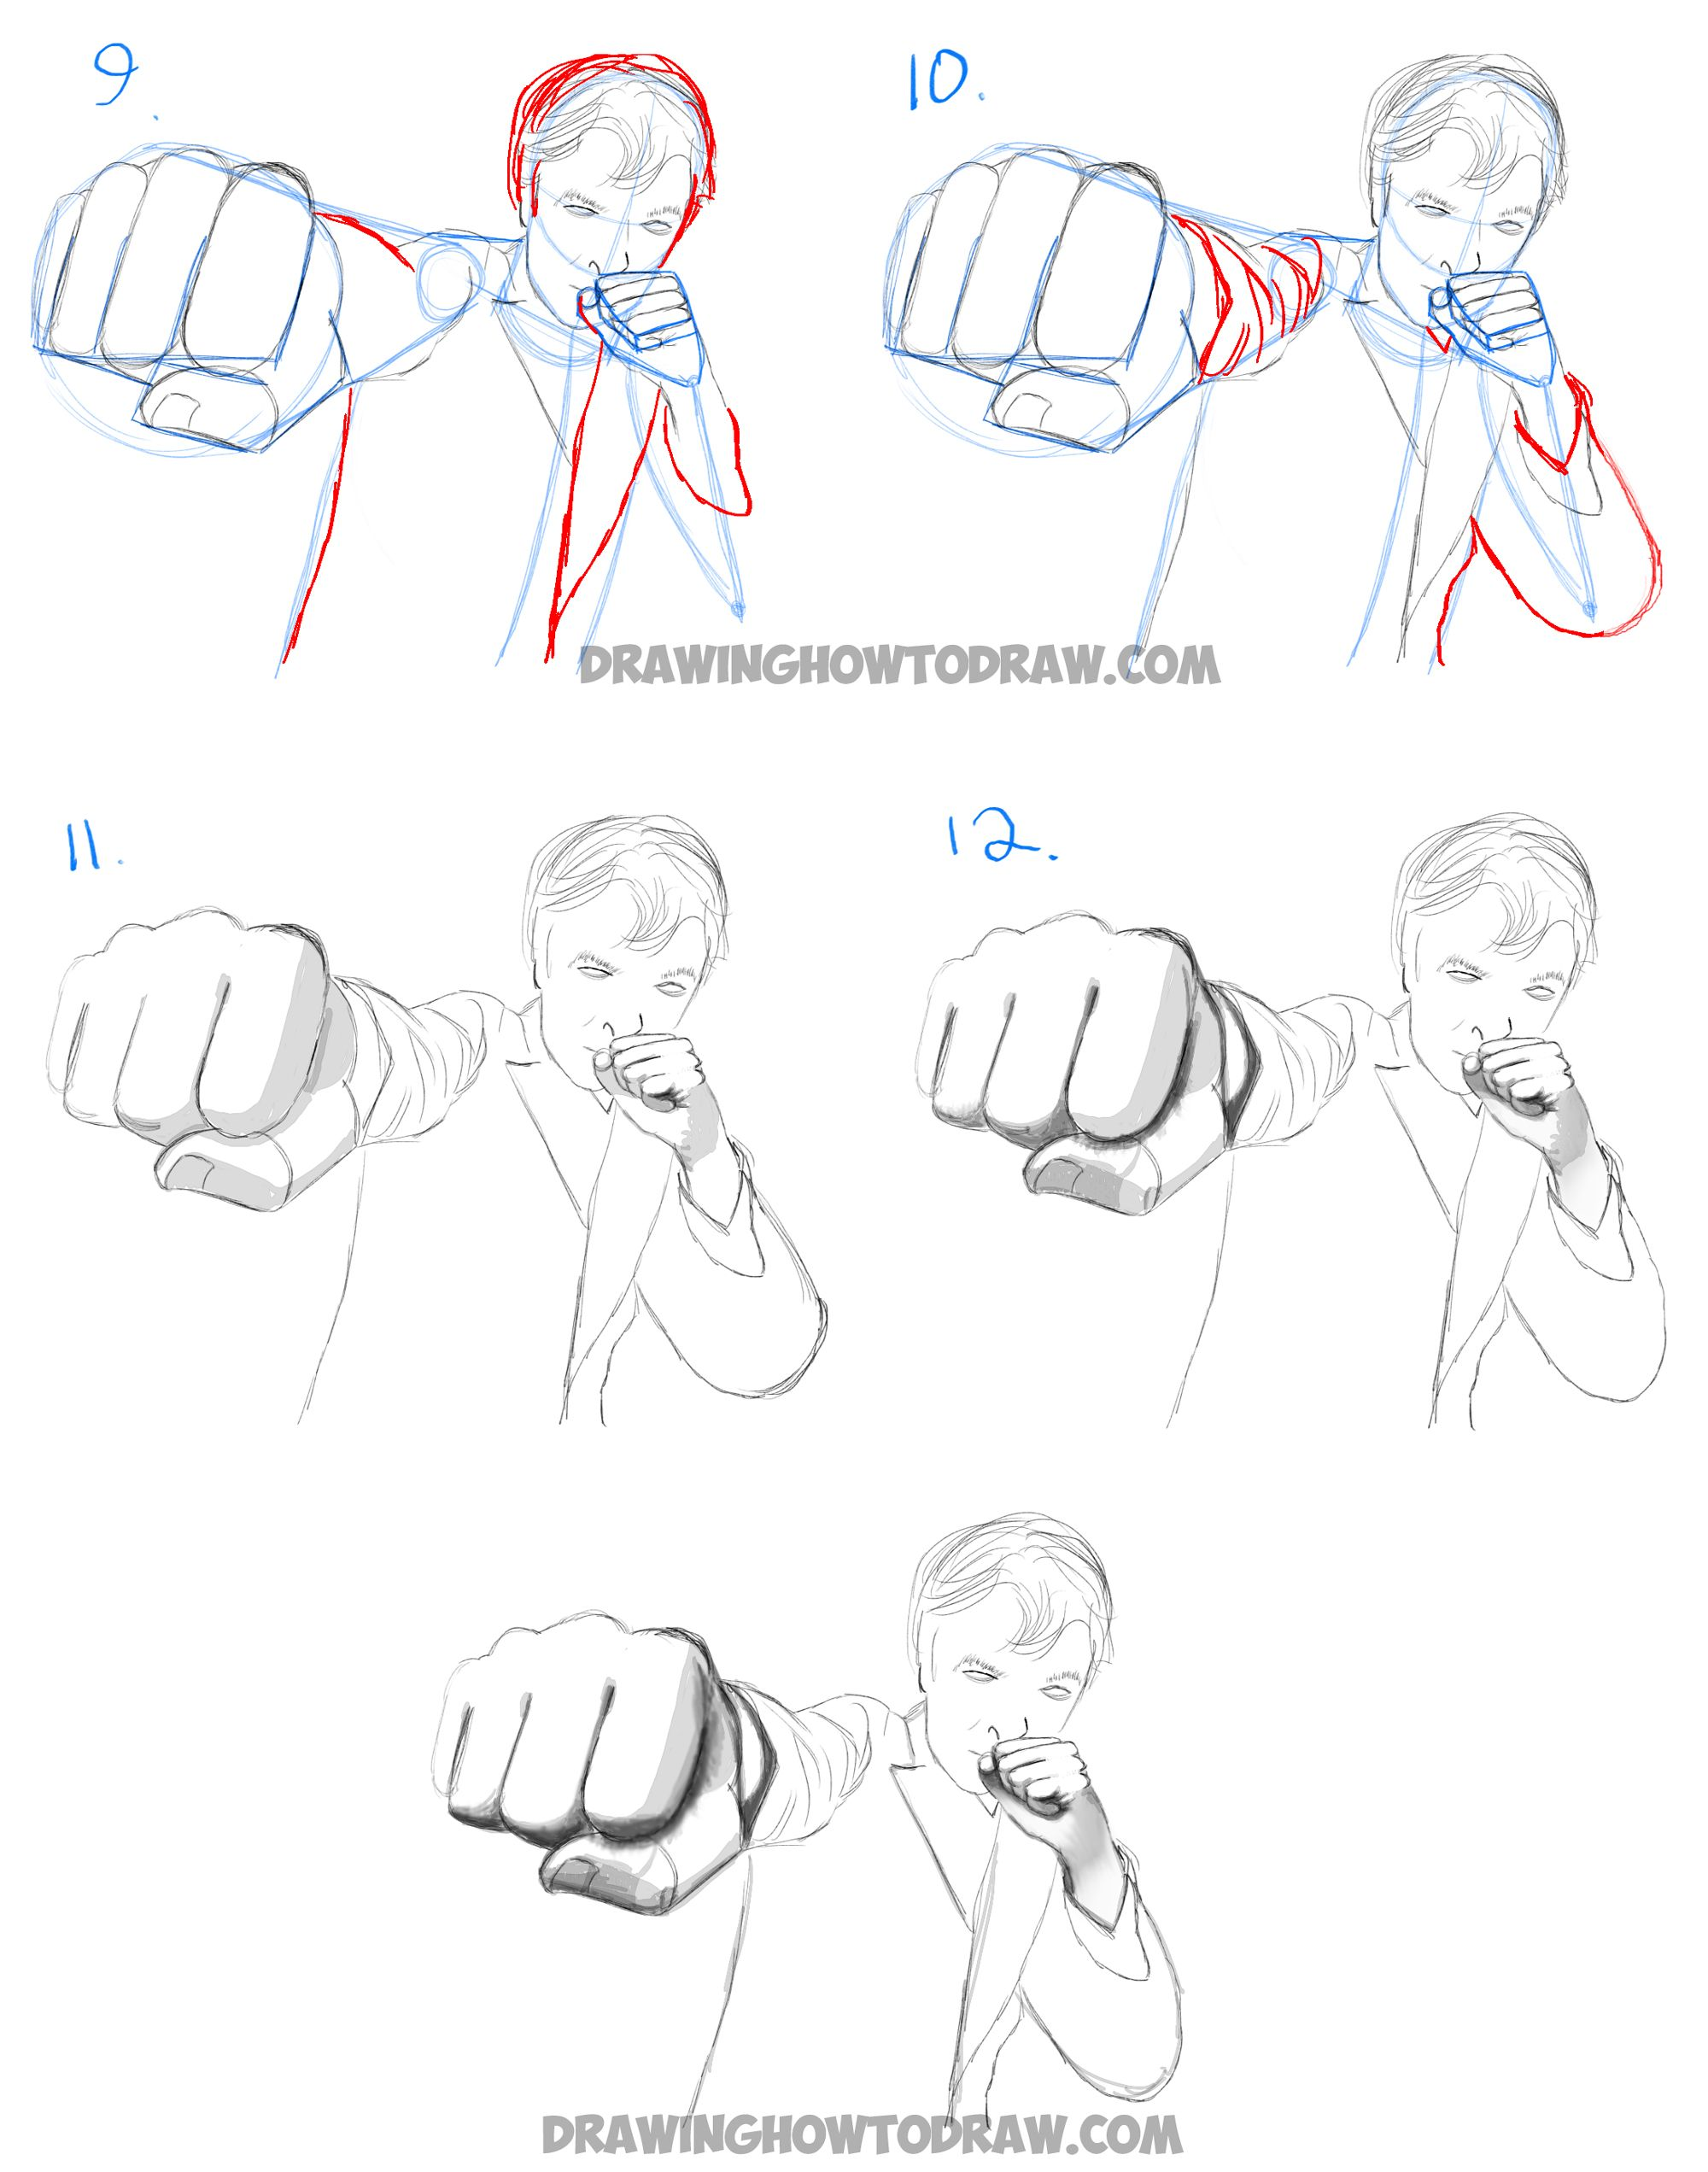 How To Draw Foreshortened Hands And Fists